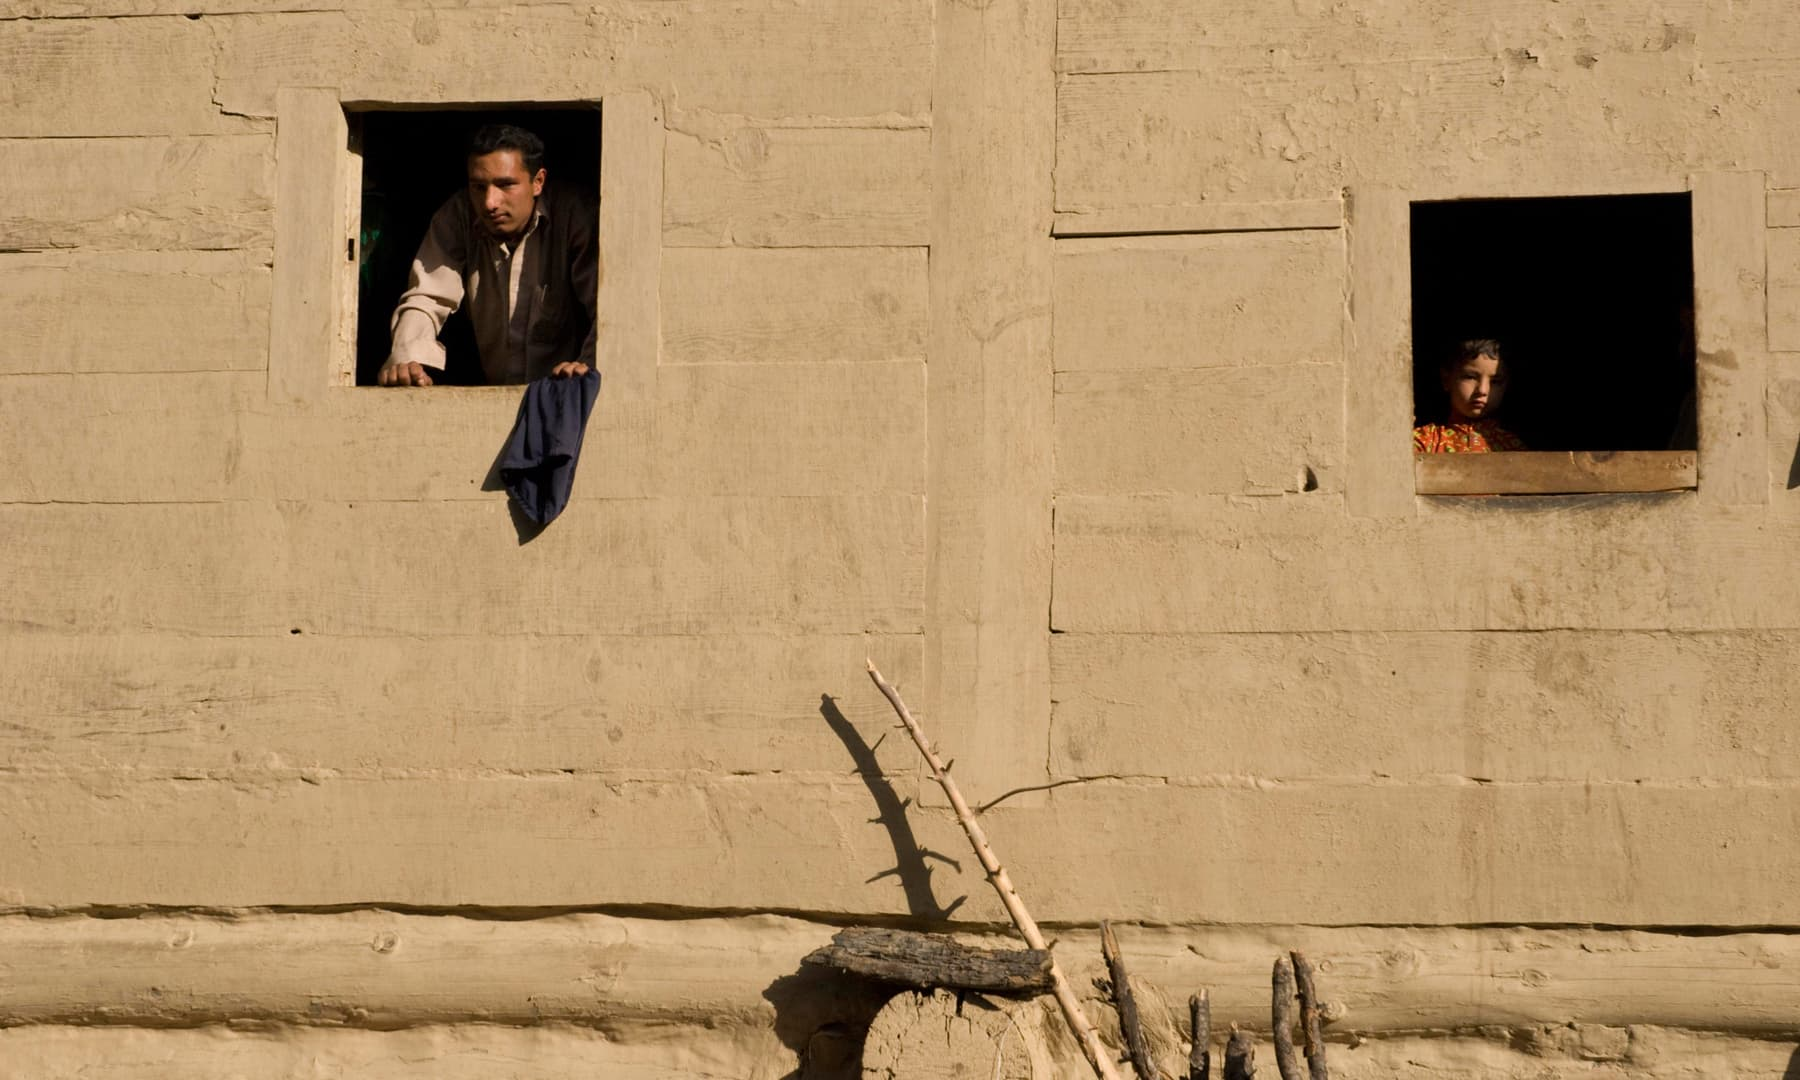 A man and child look out the windows of a wooden house in Taobat | Ayesha Villani, White Star